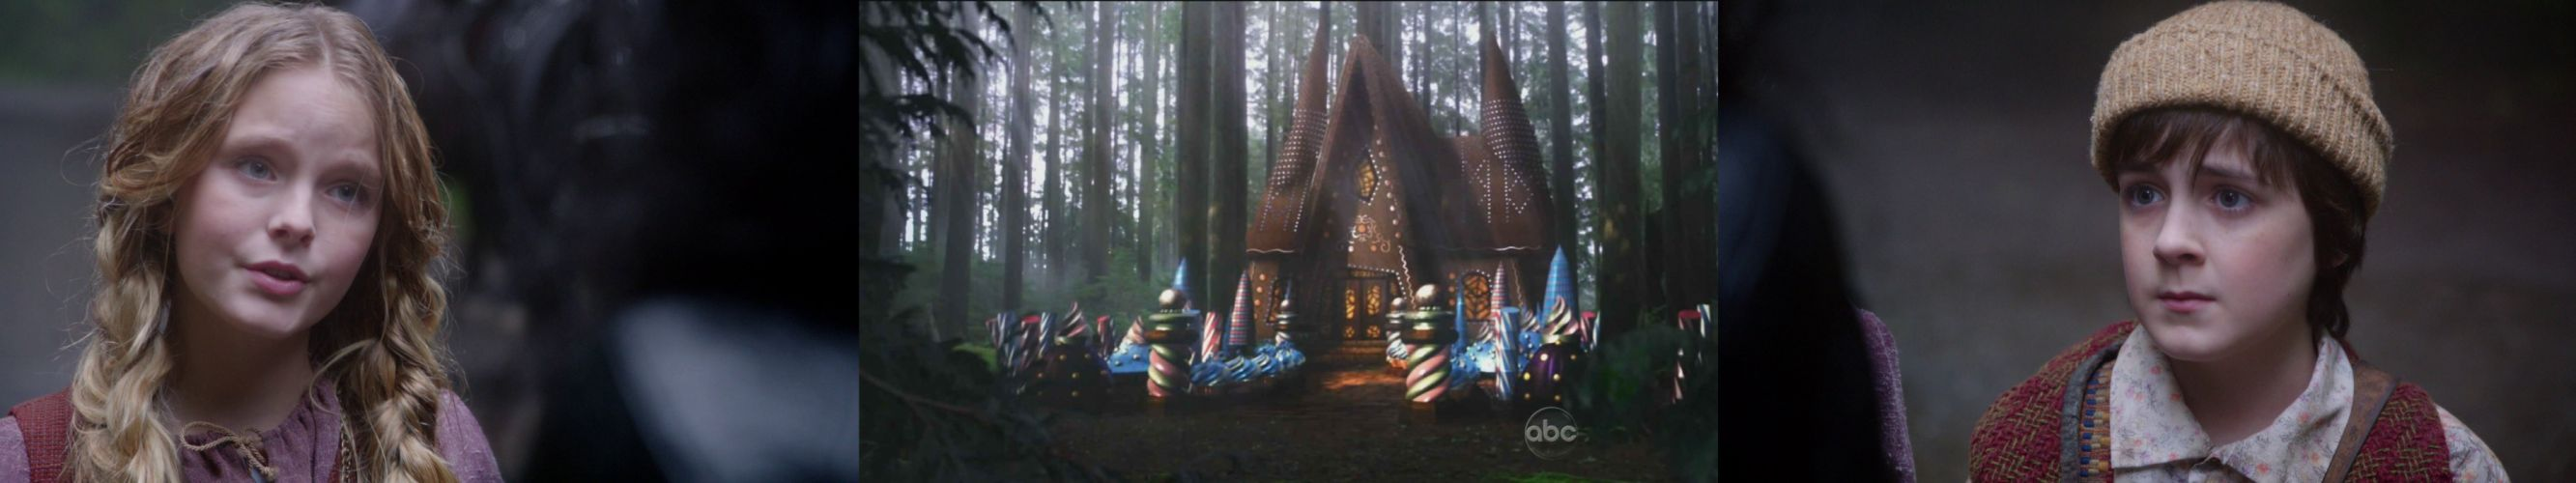 wallpaper tiple three multi multiple monitor screen tv television serie once upon a time il etait une fois hansel gretel wallpaper